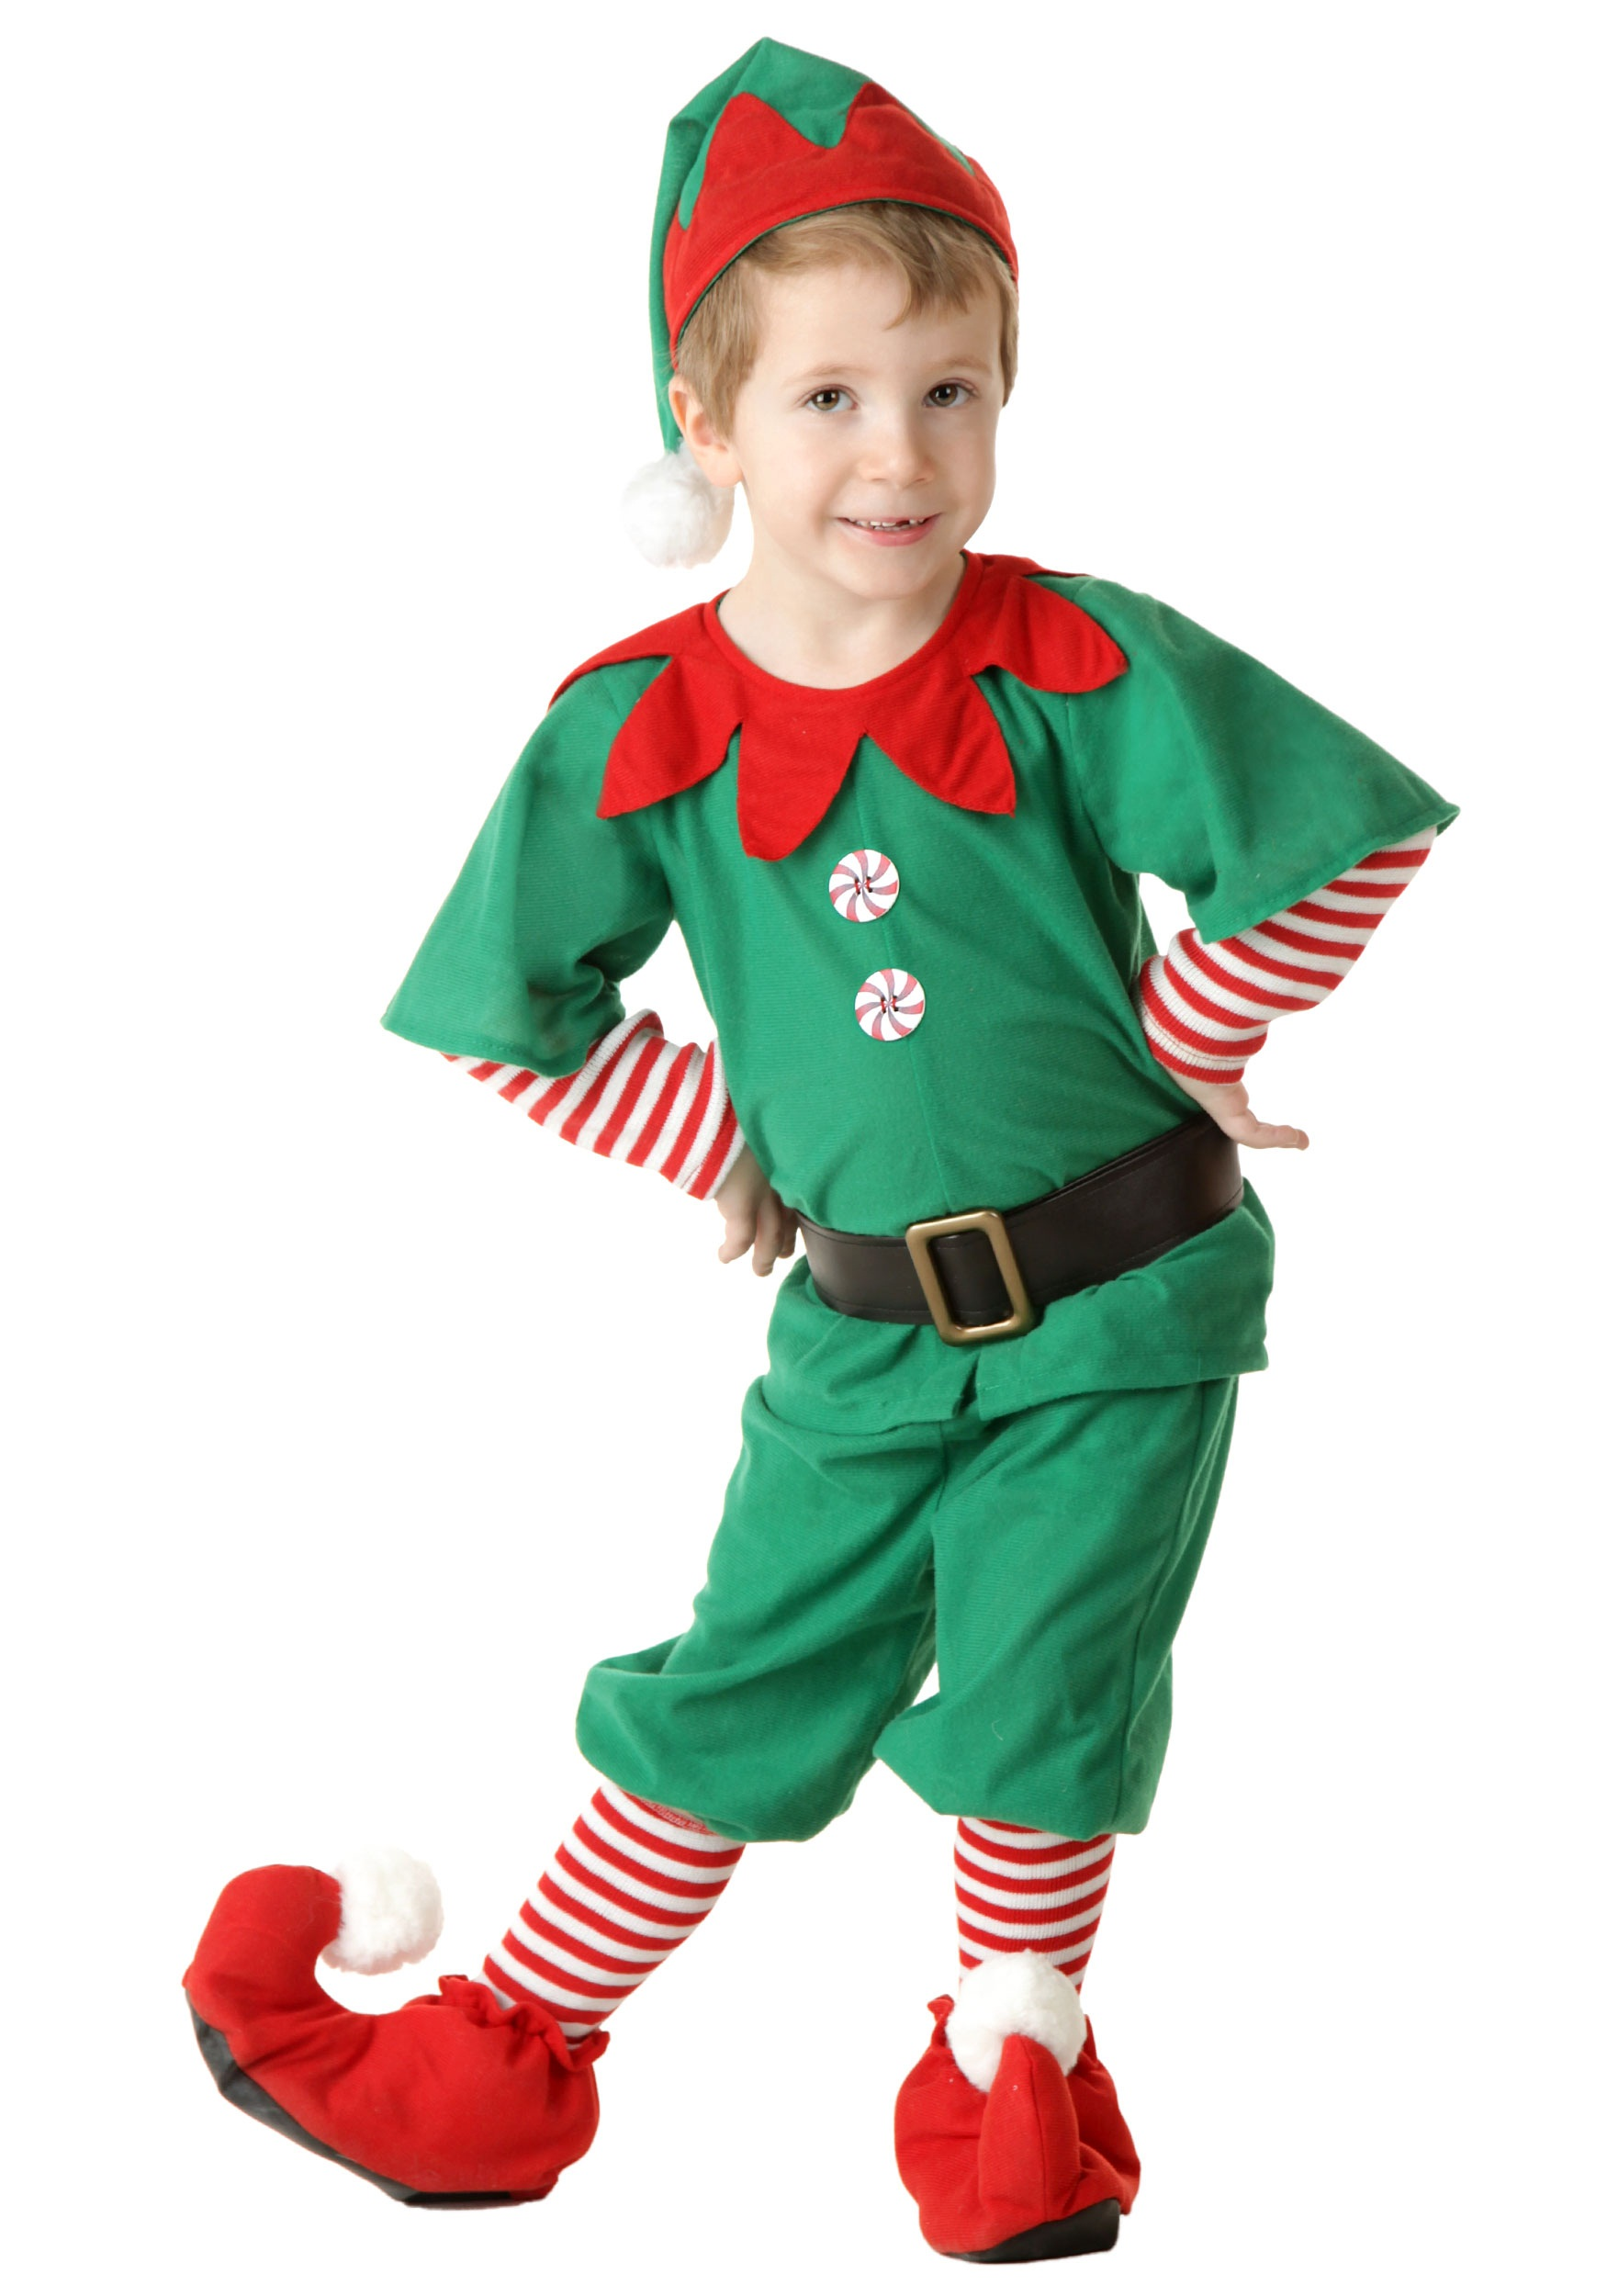 Buy Elf Costumes Online At Wholesale Halloween Costumes. Our Elf Costumes come in many different shapes, sizes, and colors. You can choose one of our traditional attires, such as the red and green tunic and pants, or you can settle for something more modern and stylish.